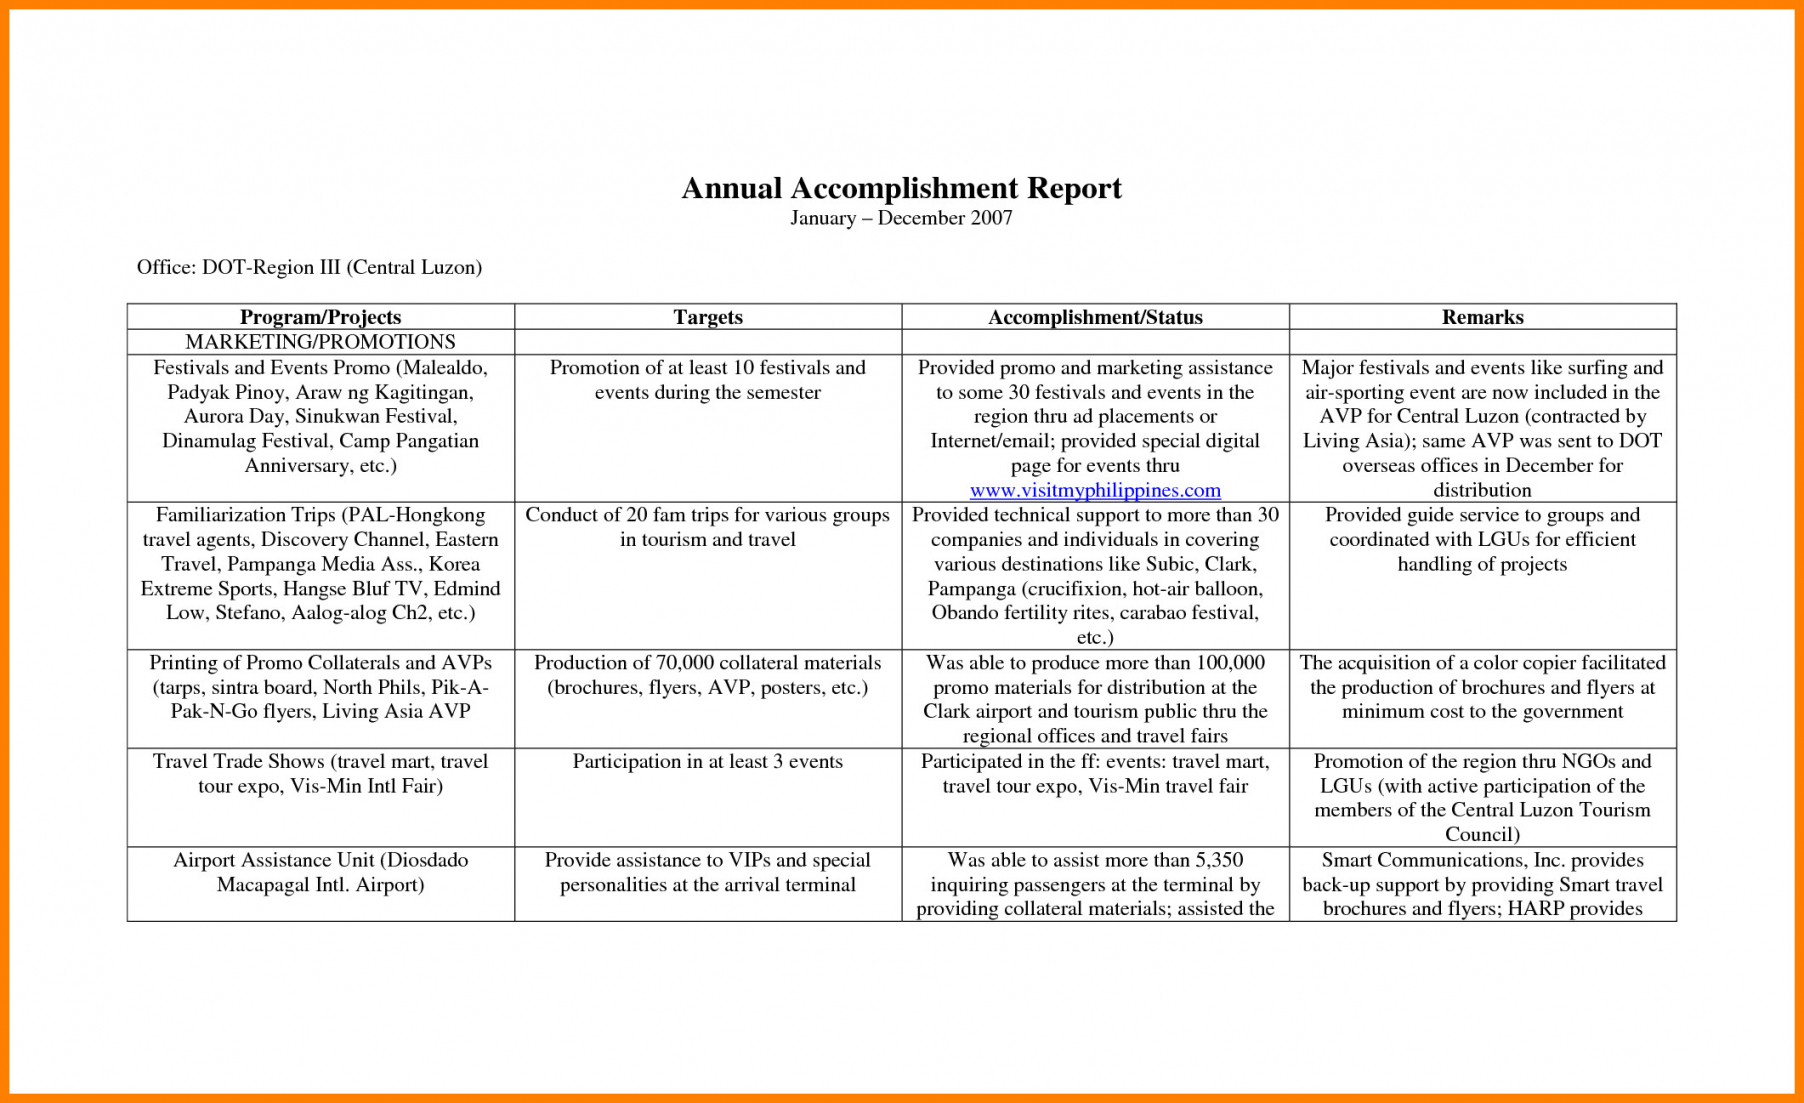 Annual Accomplishment Report Template With Regard To Weekly Accomplishment Report Template